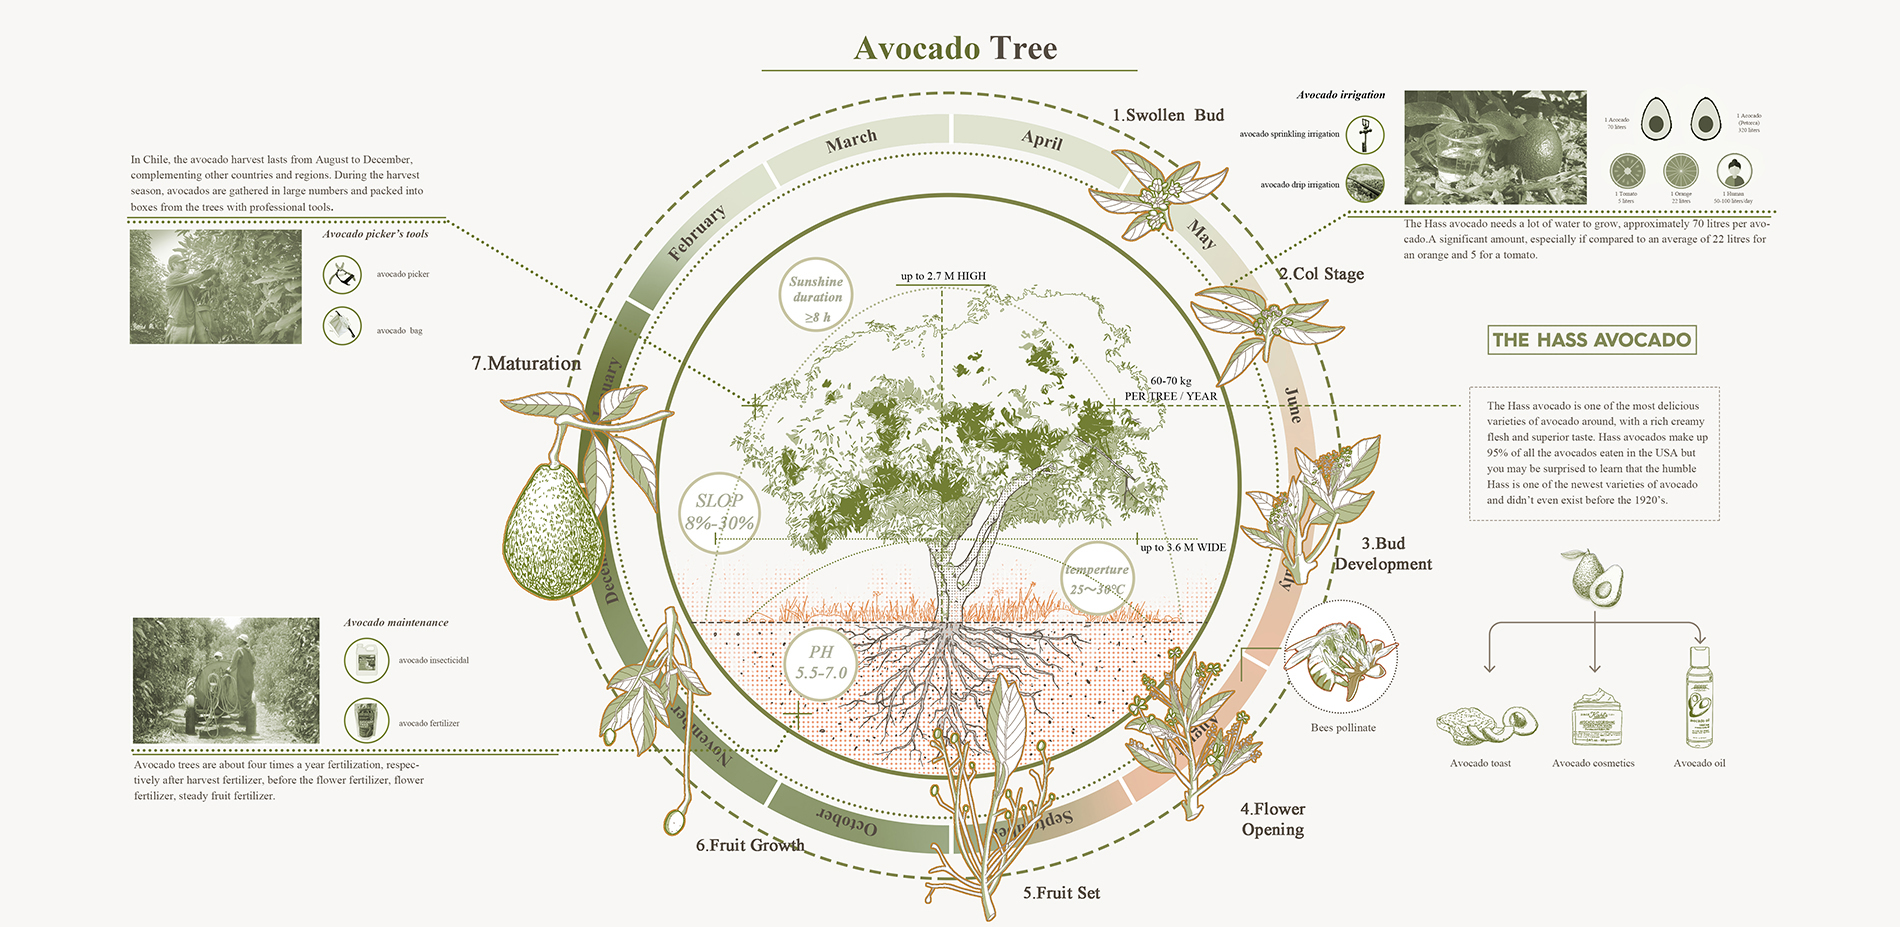 The planting cycle of avocado and its products